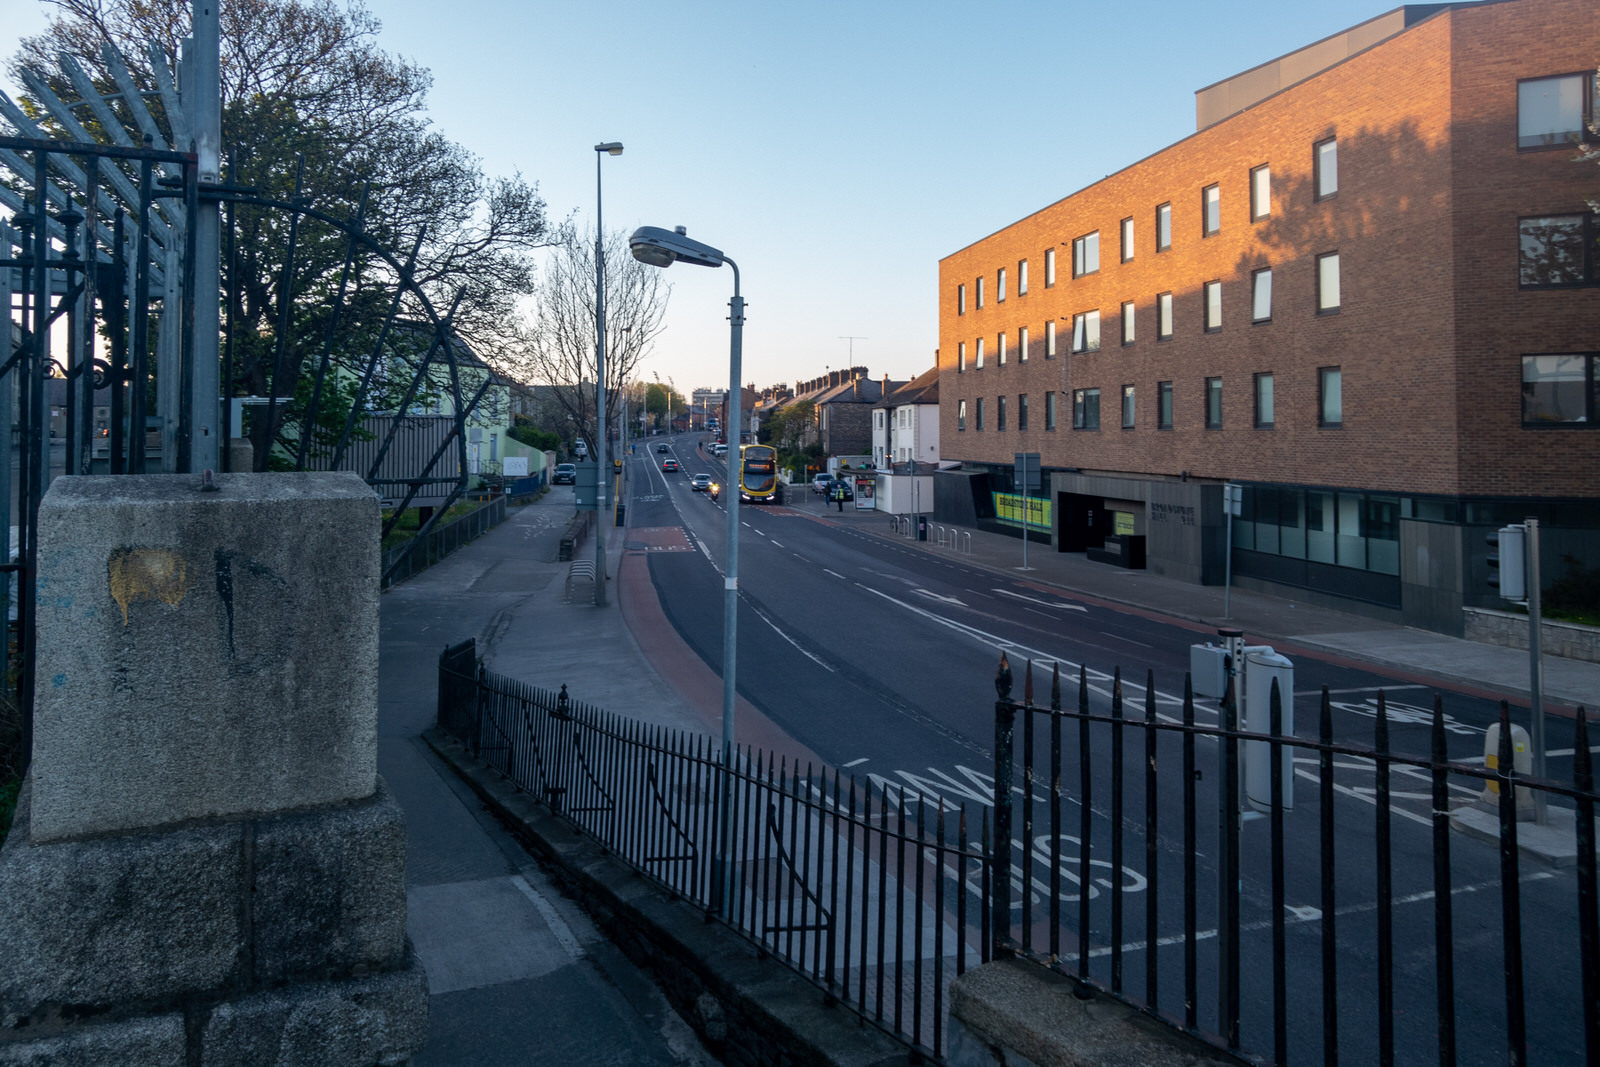 BROADSTONE-GATE-AND-PLAZA-ENTRANCE-TO-GRANGEGORMAN-UNIVERSITY-CAMPUS-161072-1